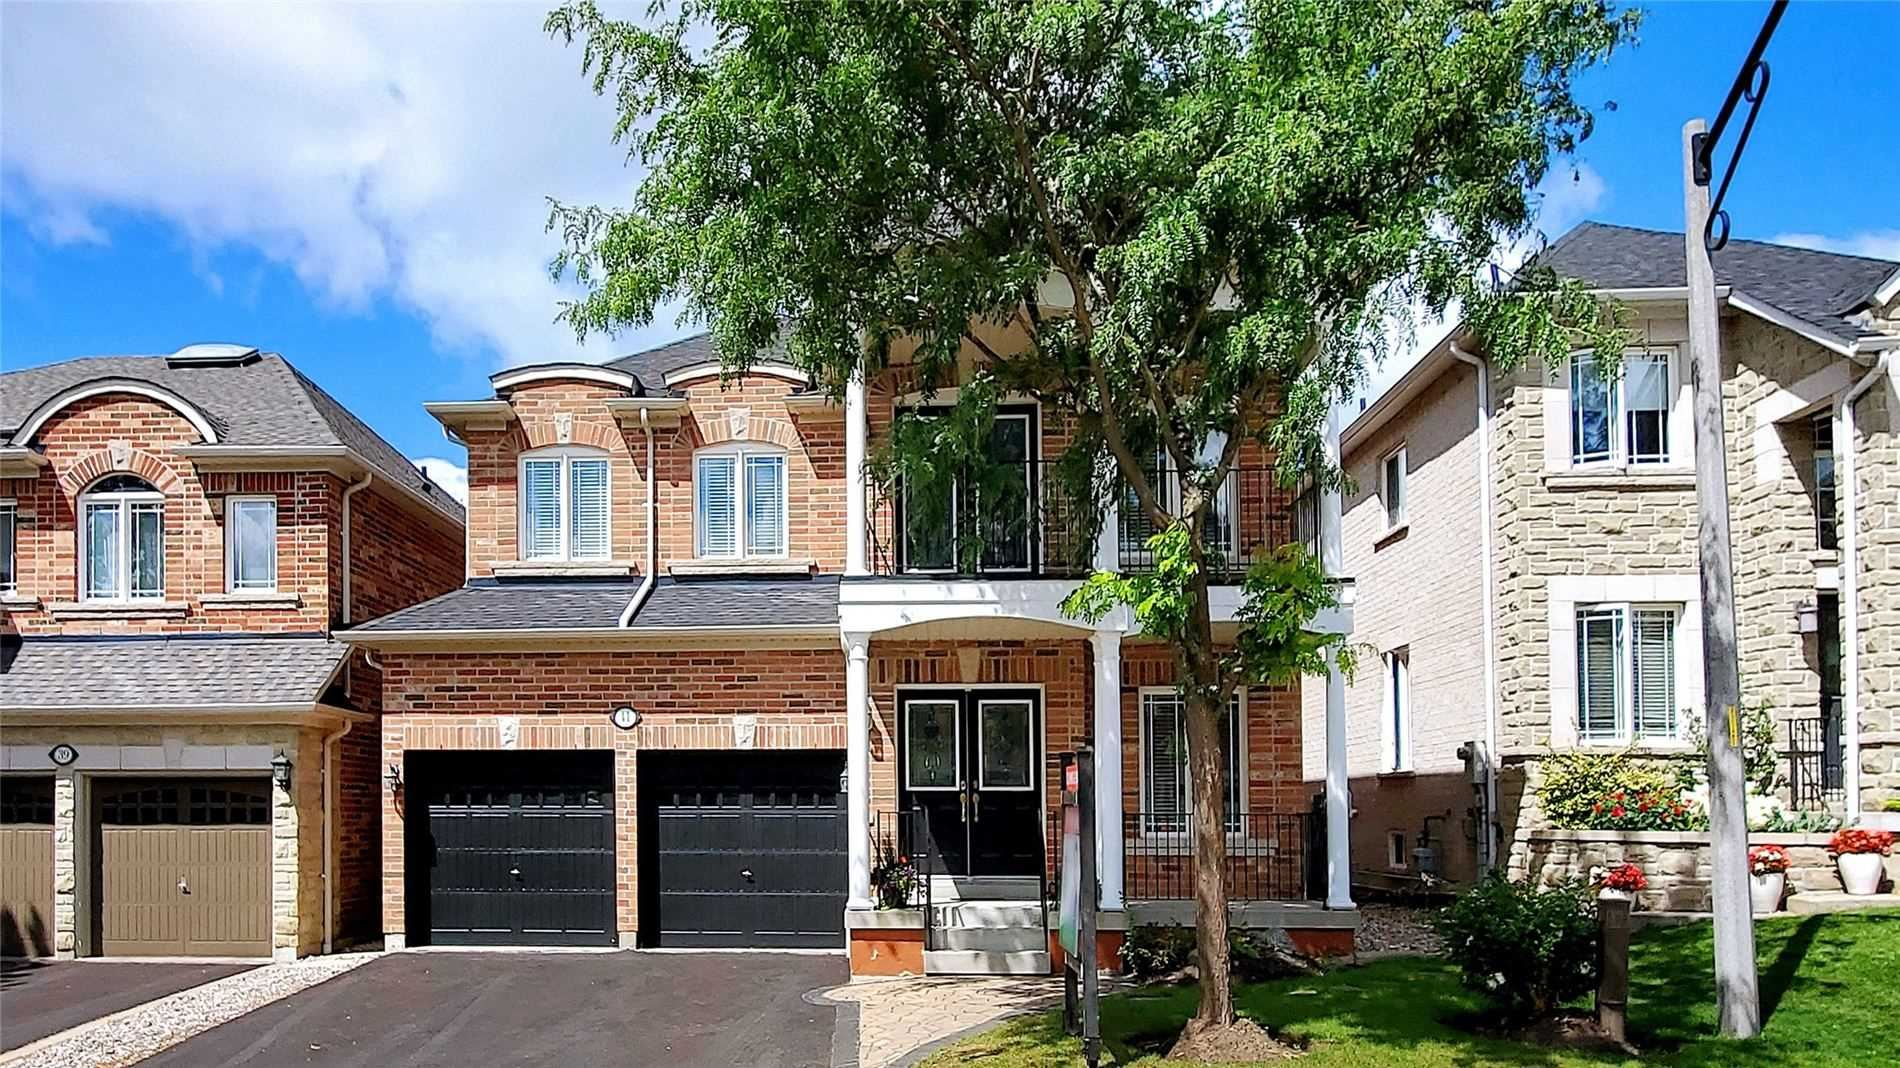 Photo of 41 Carberry Cres, Ajax, ON L1Z1S1 (MLS # E5325197)